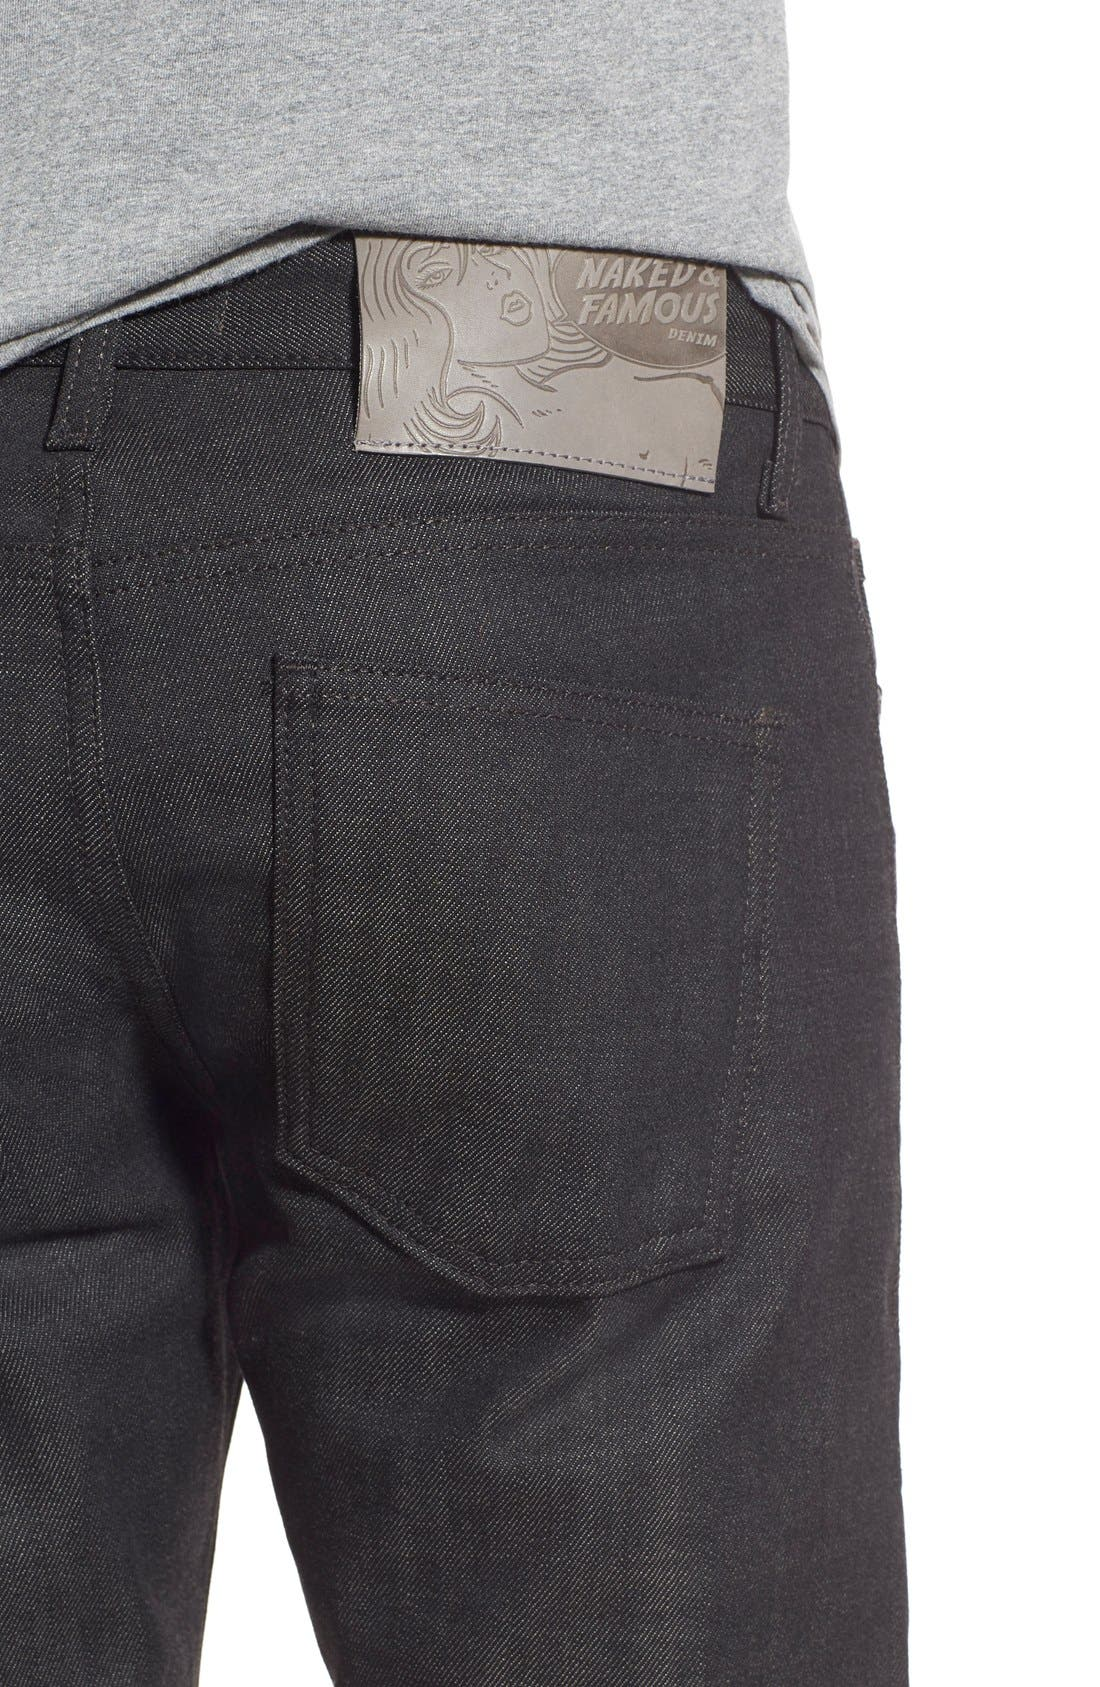 Naked & Famous Super Skinny Guy Skinny Fit Stretch Jeans,                             Alternate thumbnail 5, color,                             BLACK X GREY